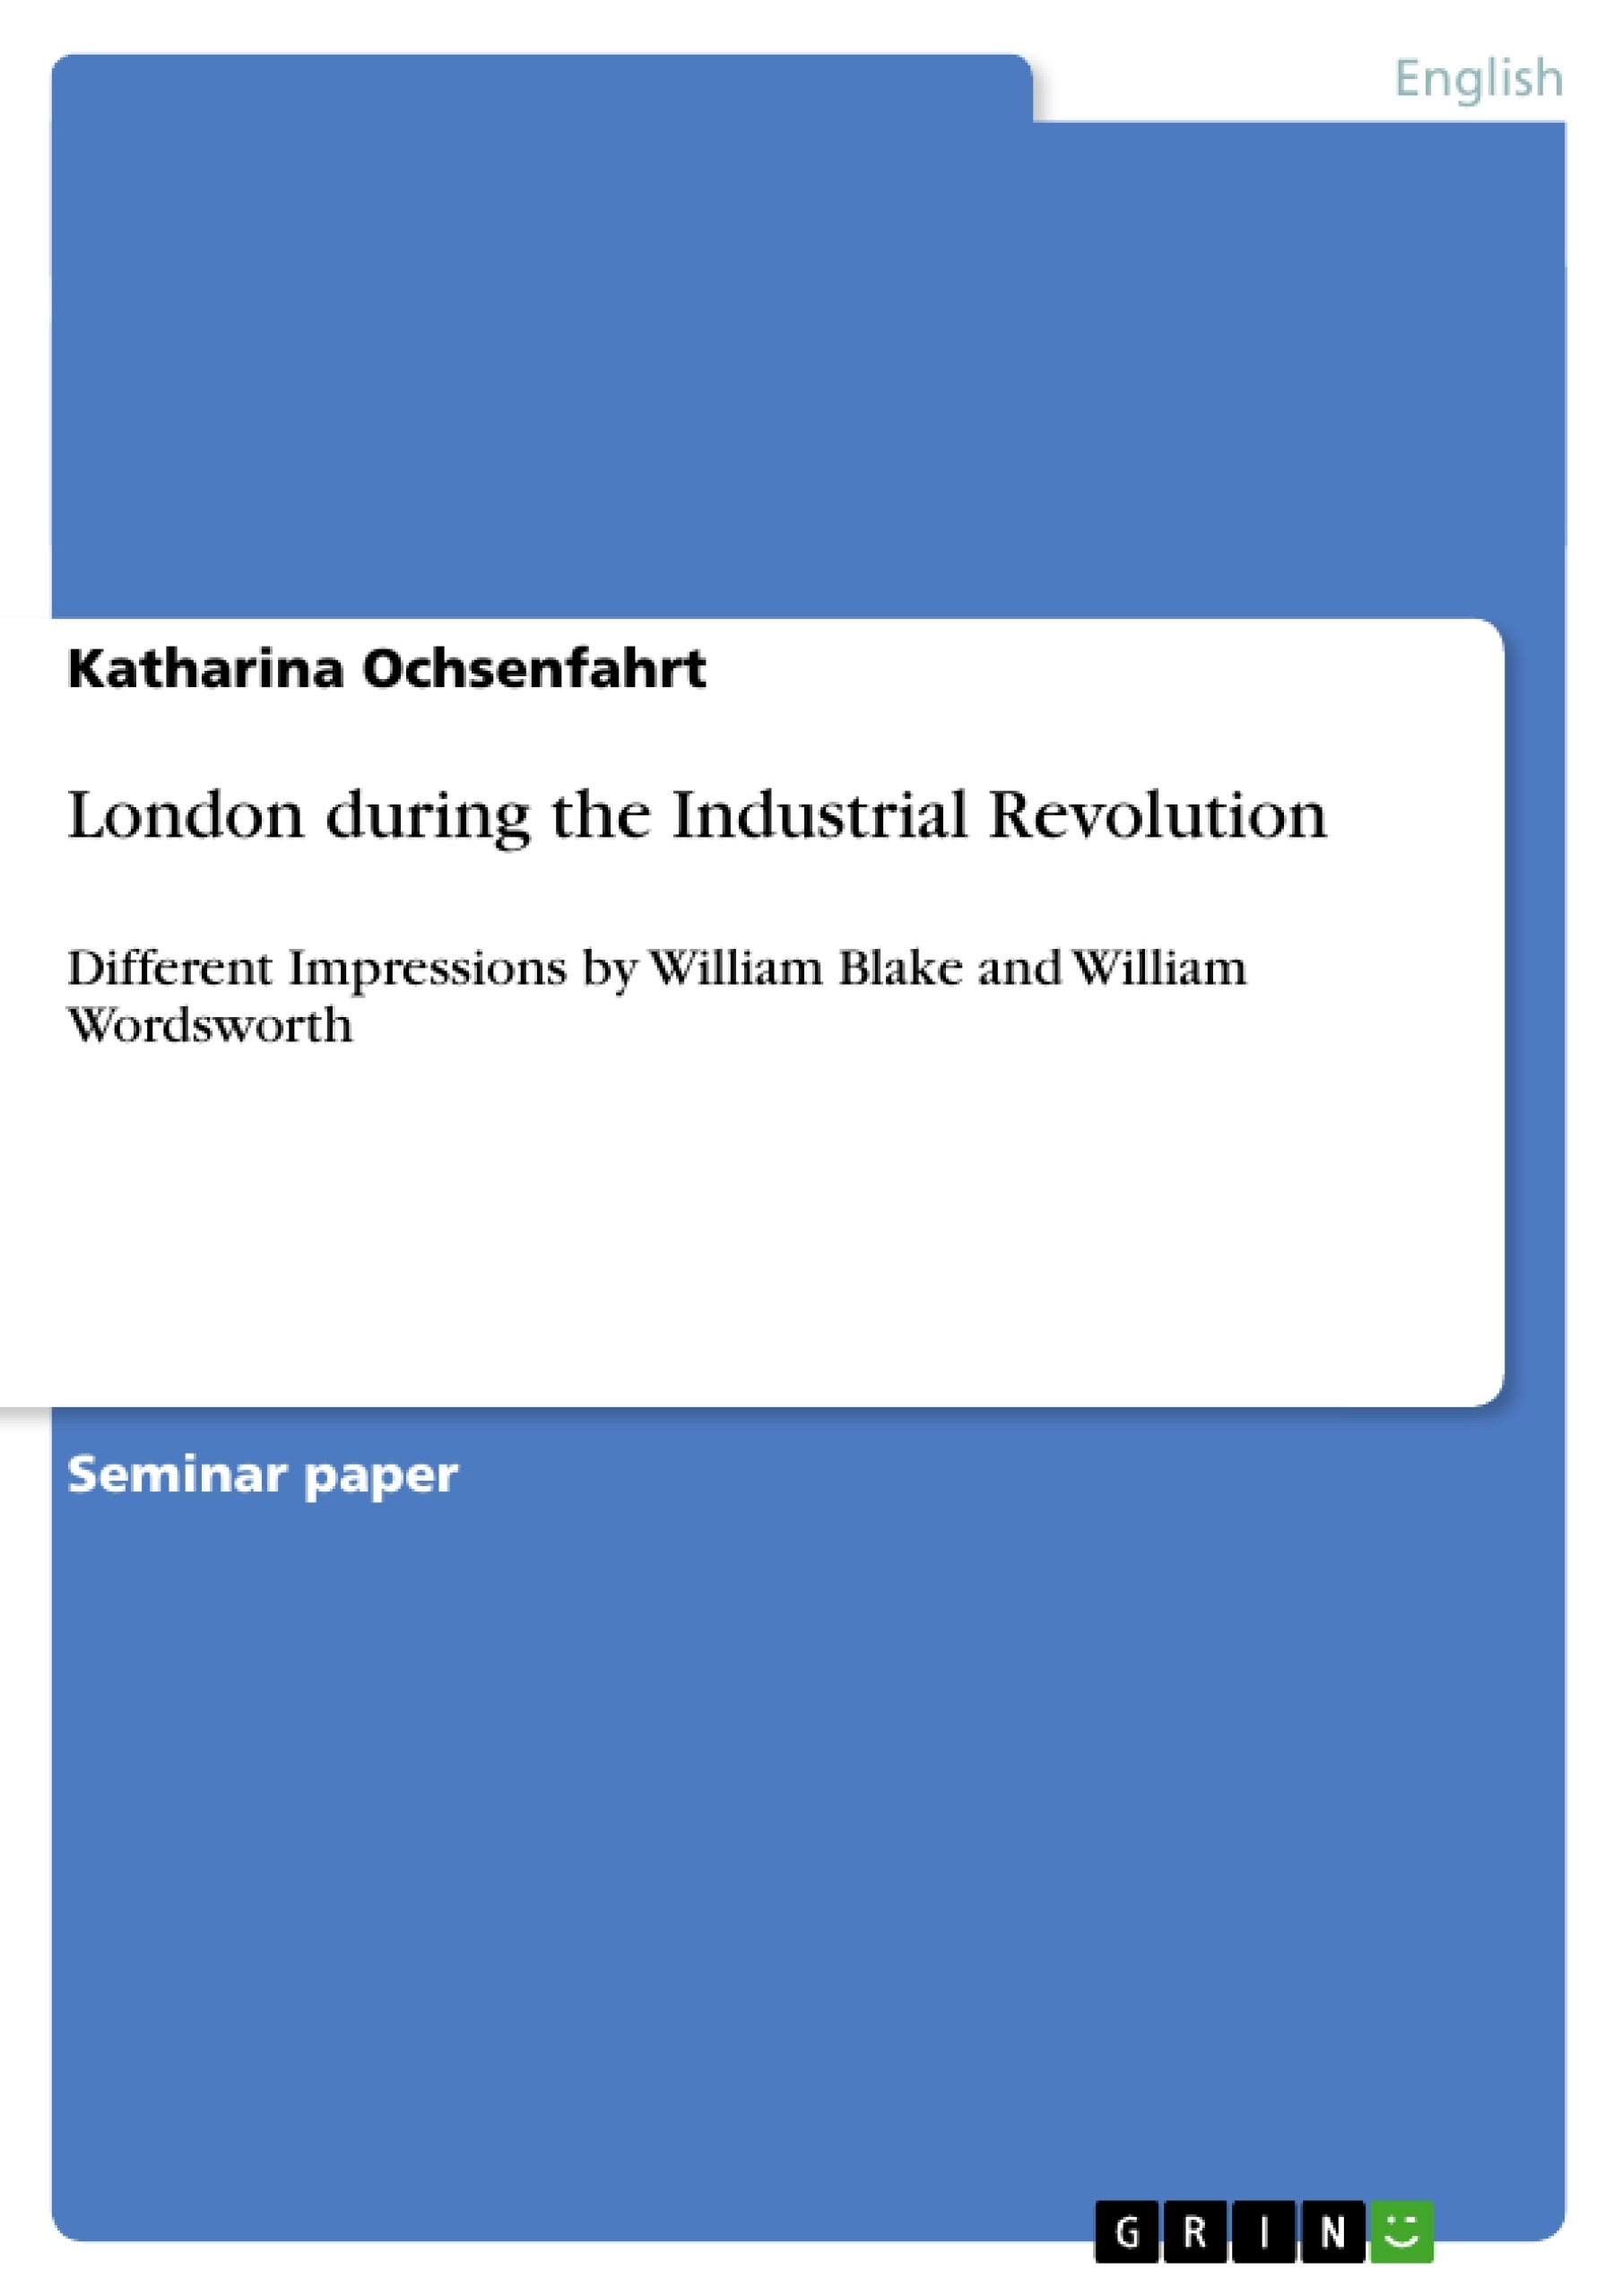 Title: London during the Industrial Revolution